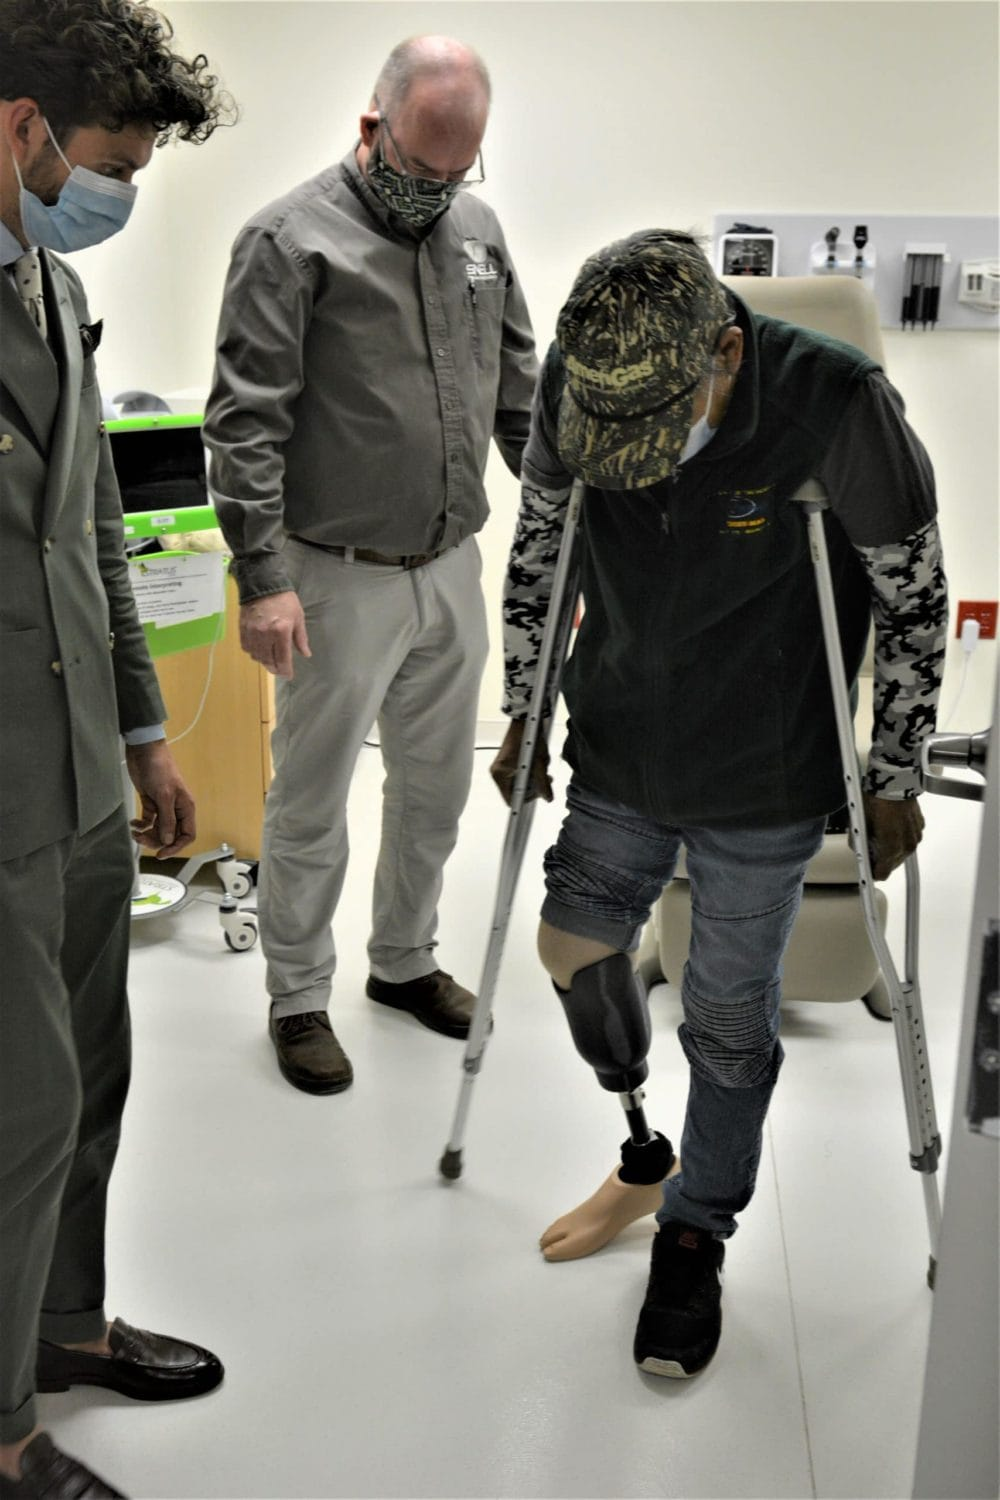 1st steps on new prothesis